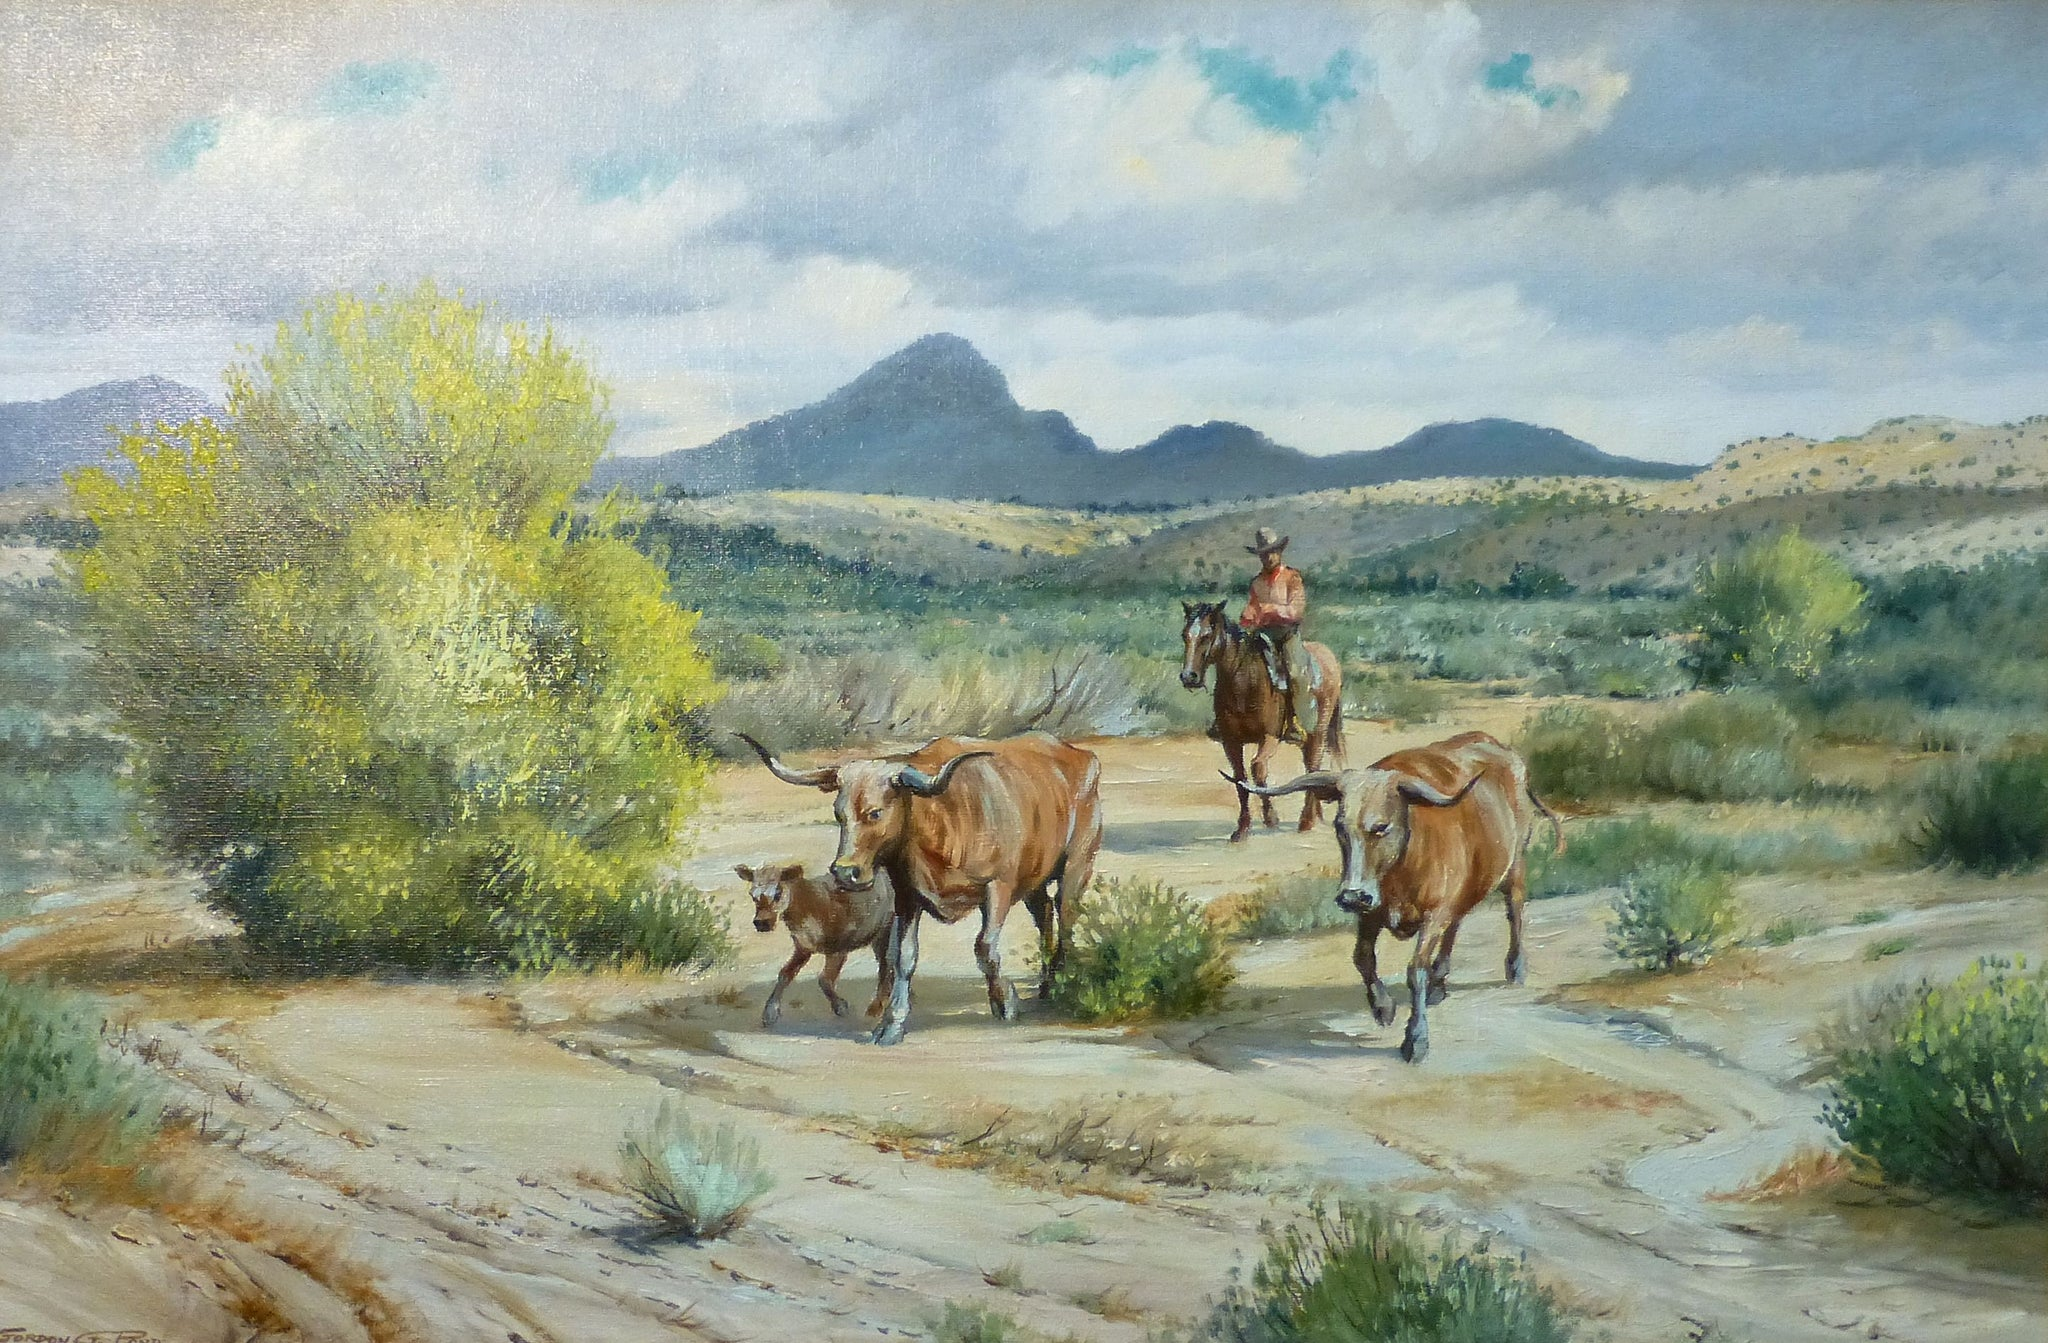 Longhorns by Gordon G. Pond gordon pond, oil, paintings, paintings-western